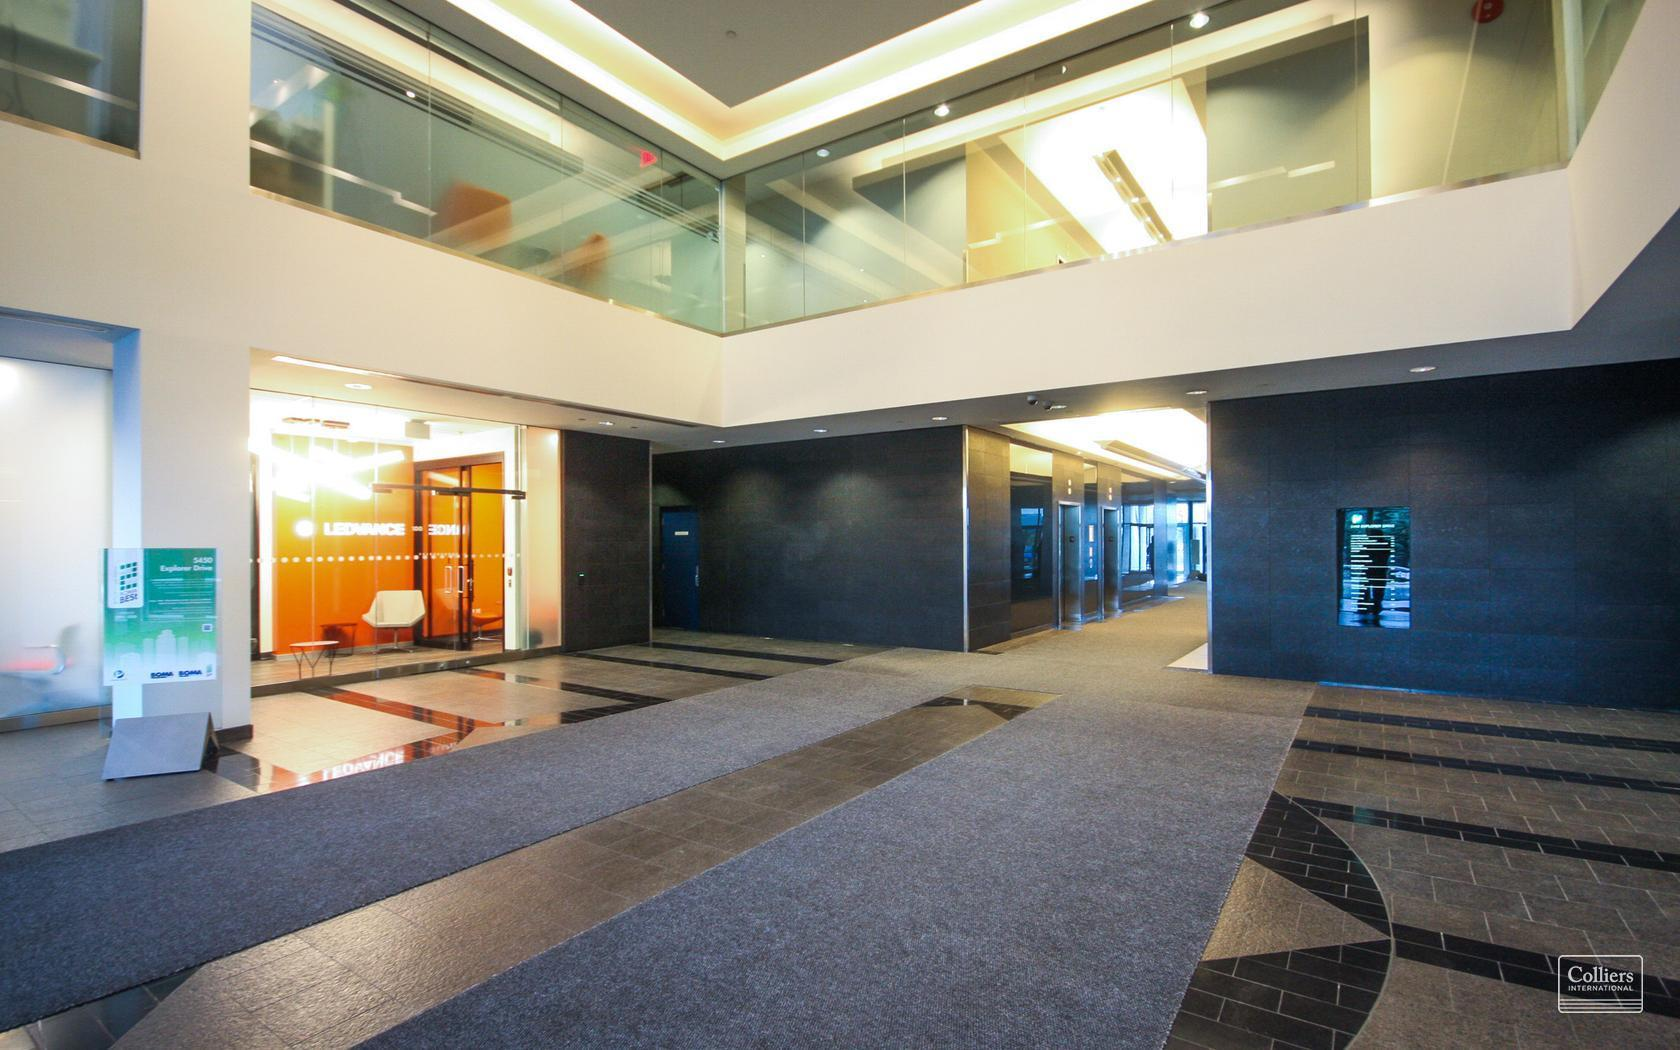 Lobby at 5450 Explorer Drive in the Airport Corporate Centre